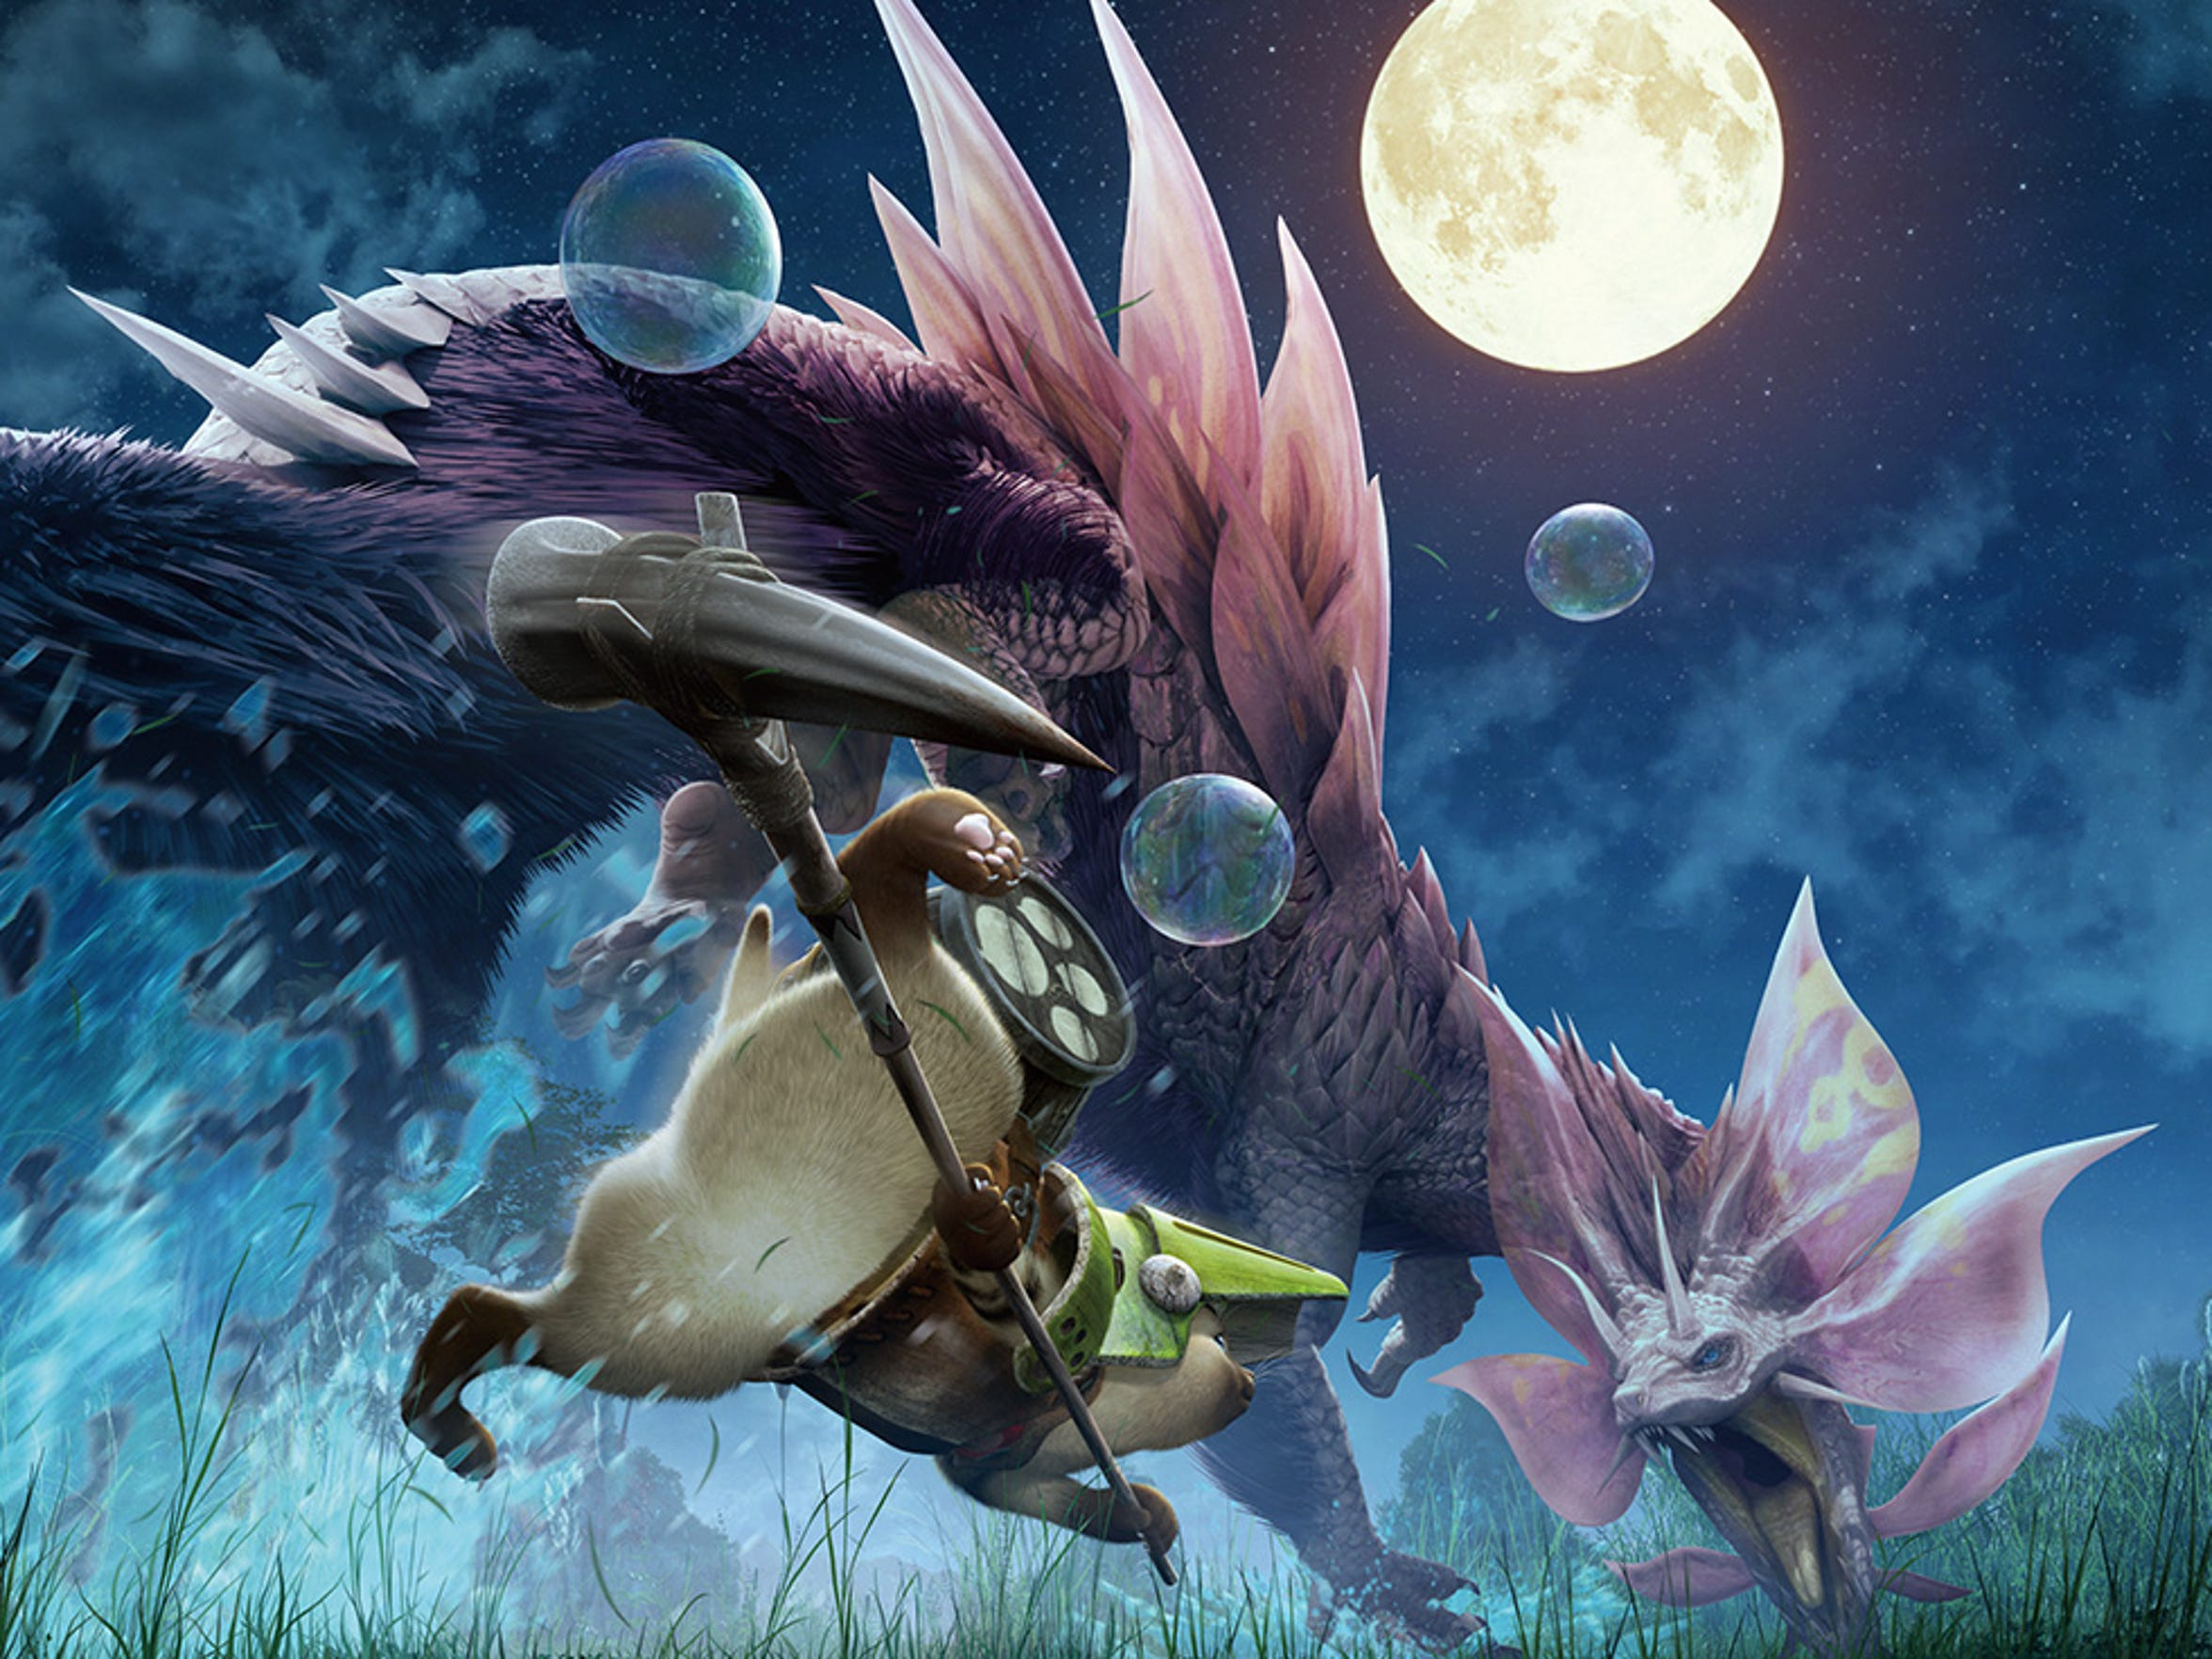 """You can do Prowler quests as a Palico in """"Monster Hunter"""